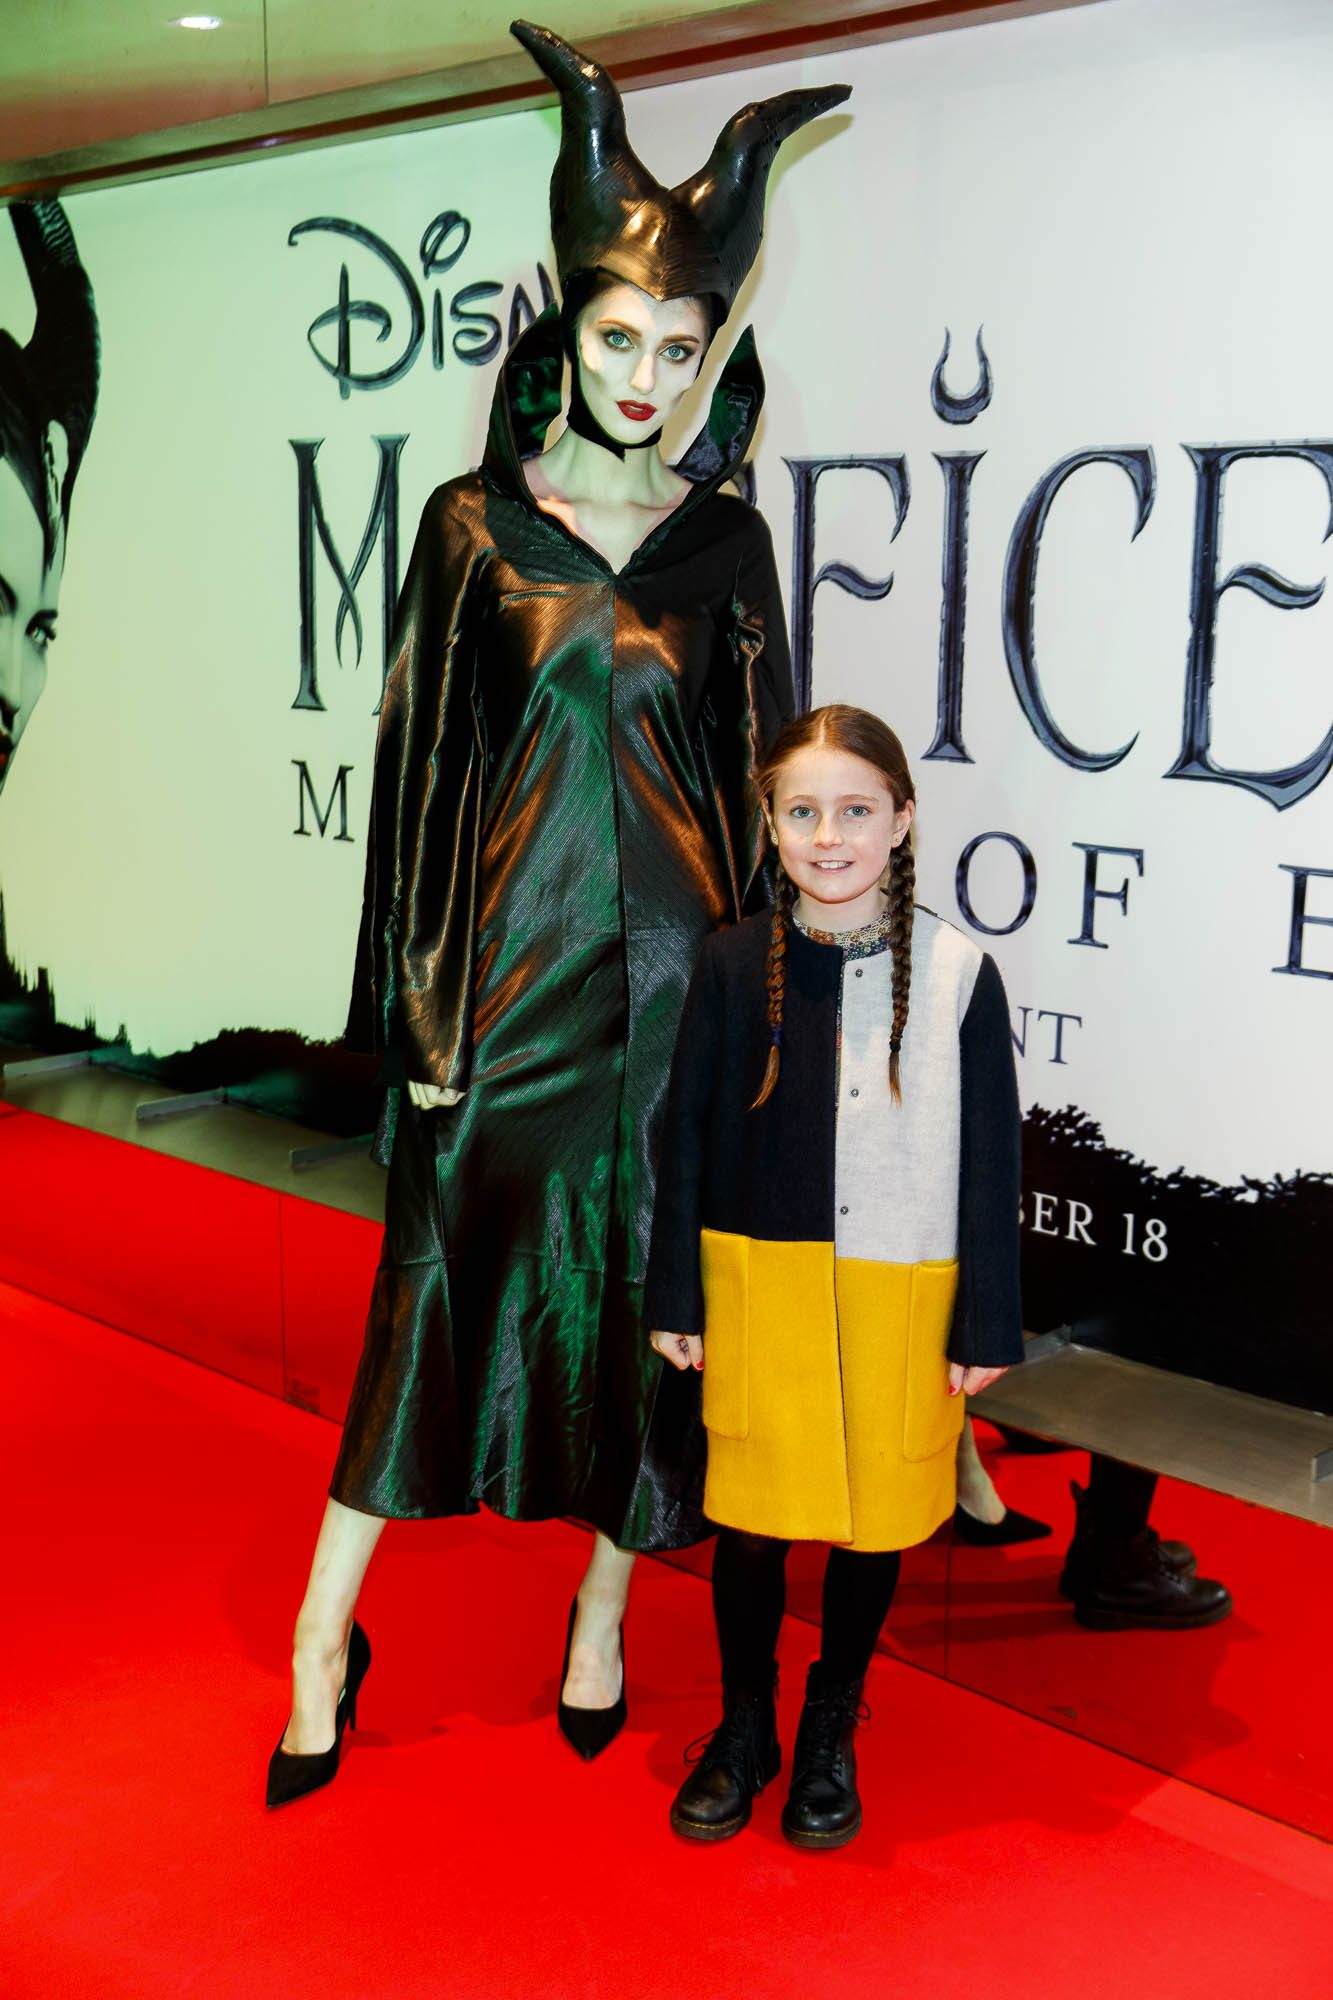 """Cherry Farrell (8) from Cabra pictured a the special preview screening of Disney's """"Maleficent: Mistress of Evil' at the Light House Cinema, Dublin. Picture: Andres Poveda"""